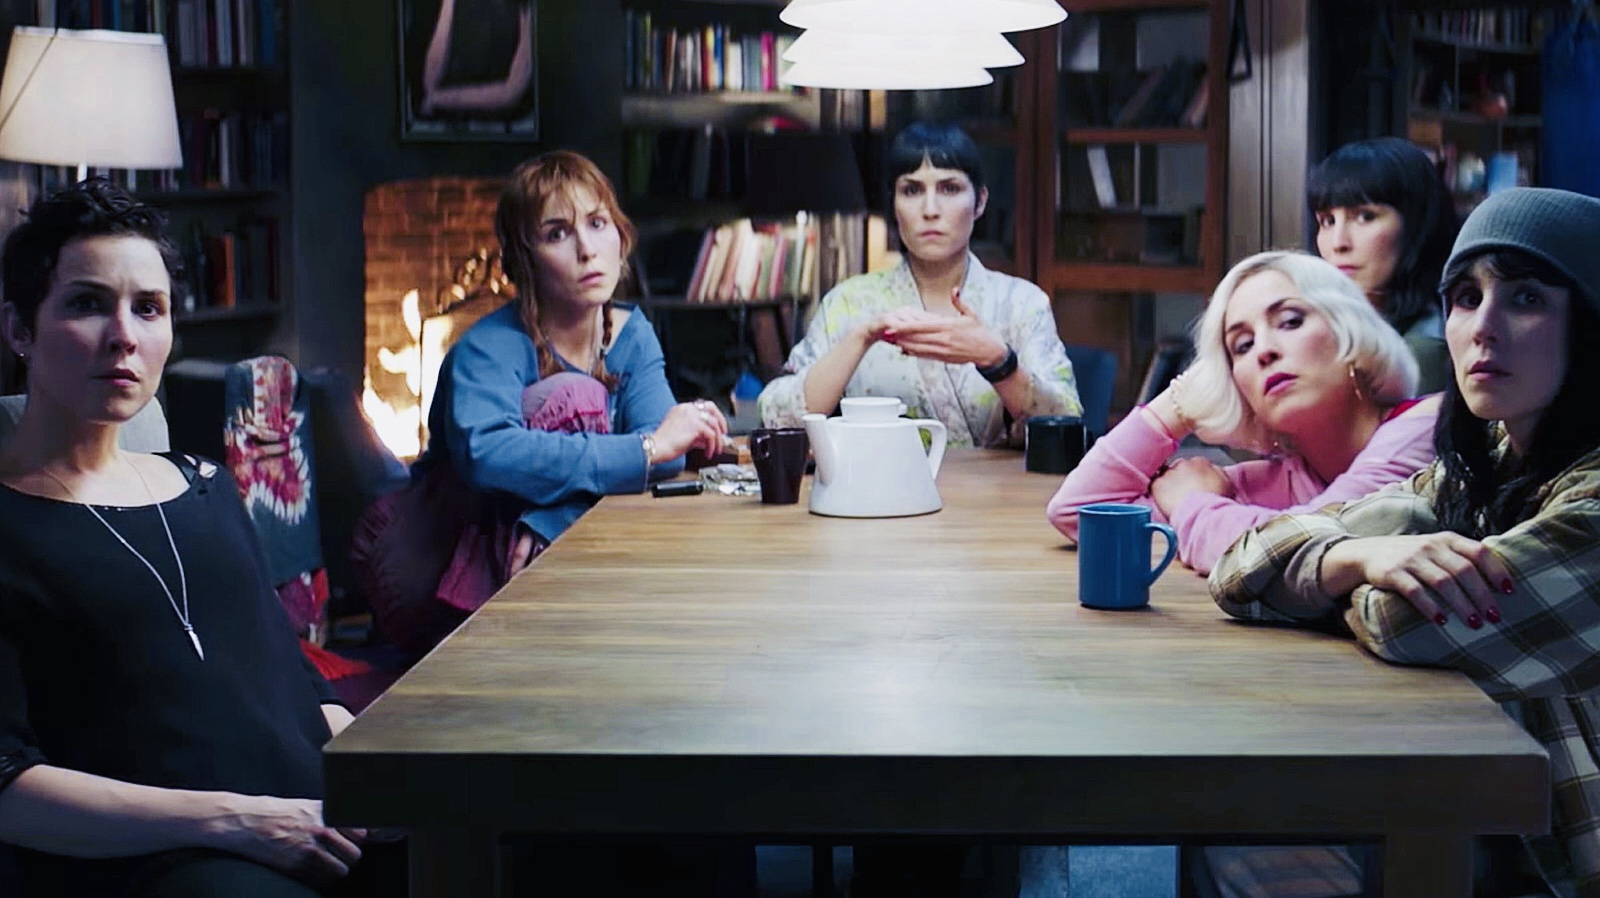 Noomi Rapace in What Happened to Monday 2017